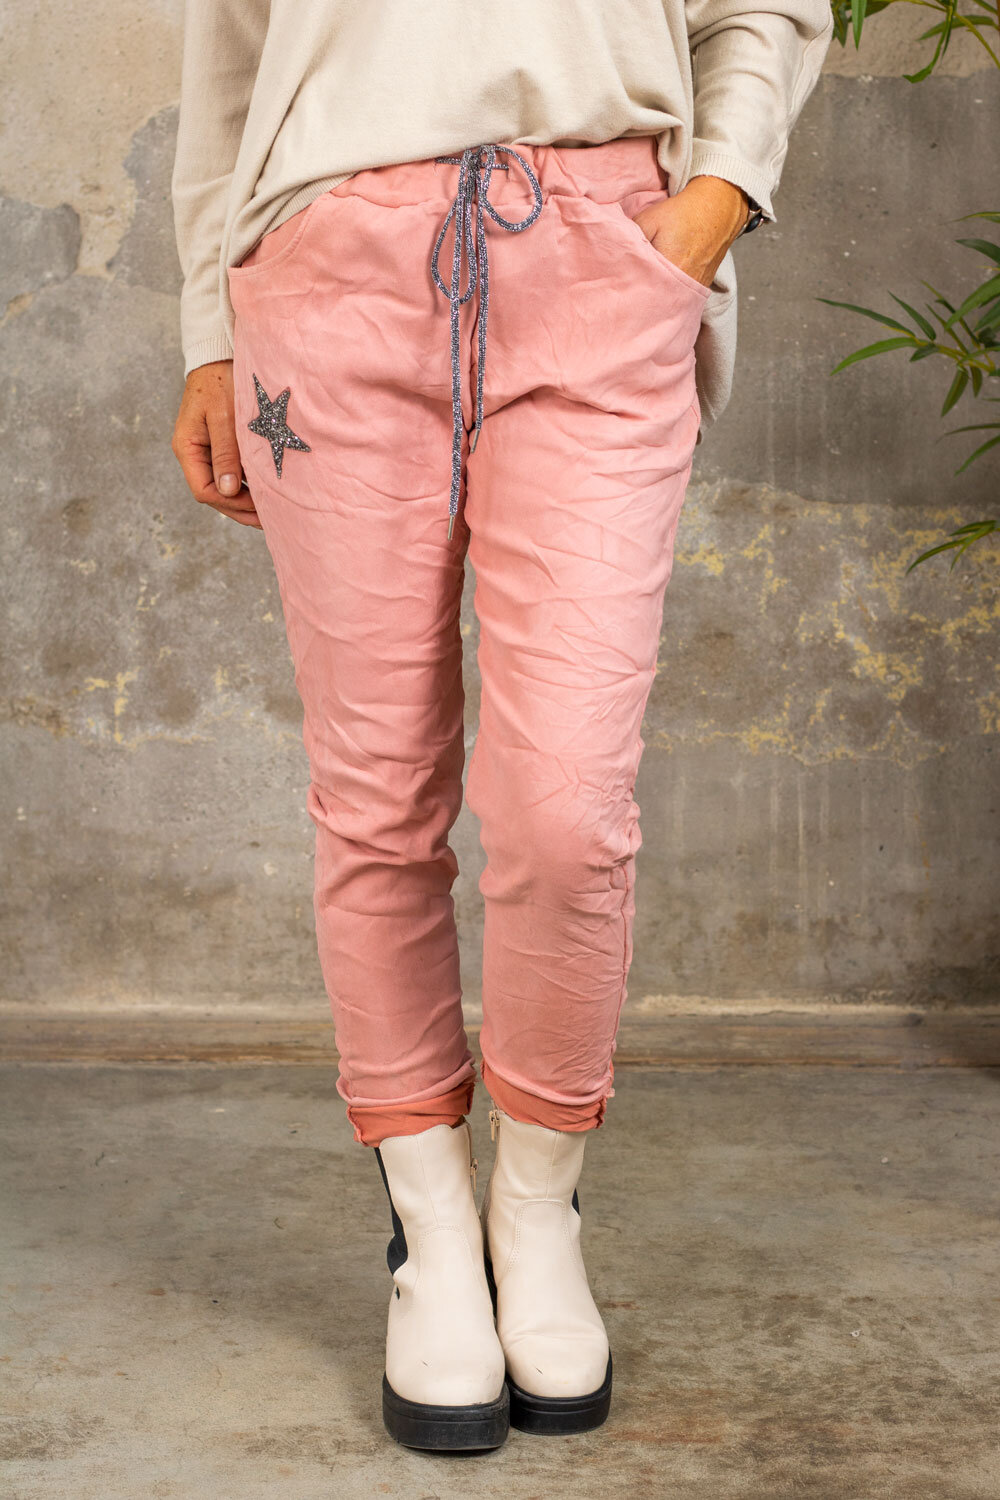 Stretchy pants 7164 - Bling star - Pink